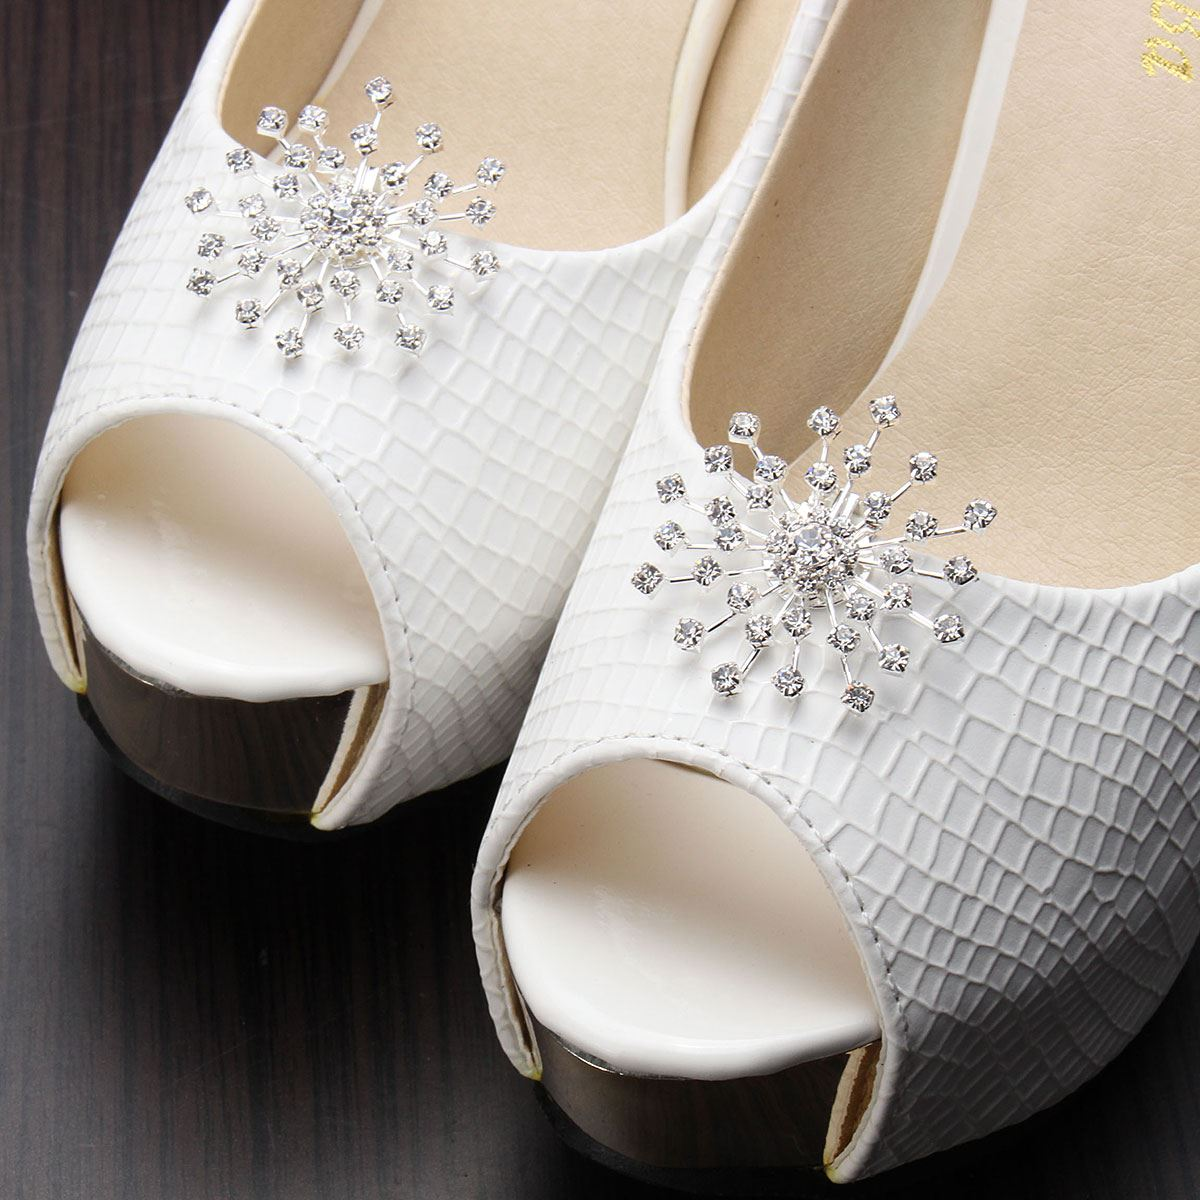 1 Pair White High-heel wedding shoes Crystal Rhinestone Boots Shoe Buckle Clips Silver Snowflower Decoration Buckle Clip Charms